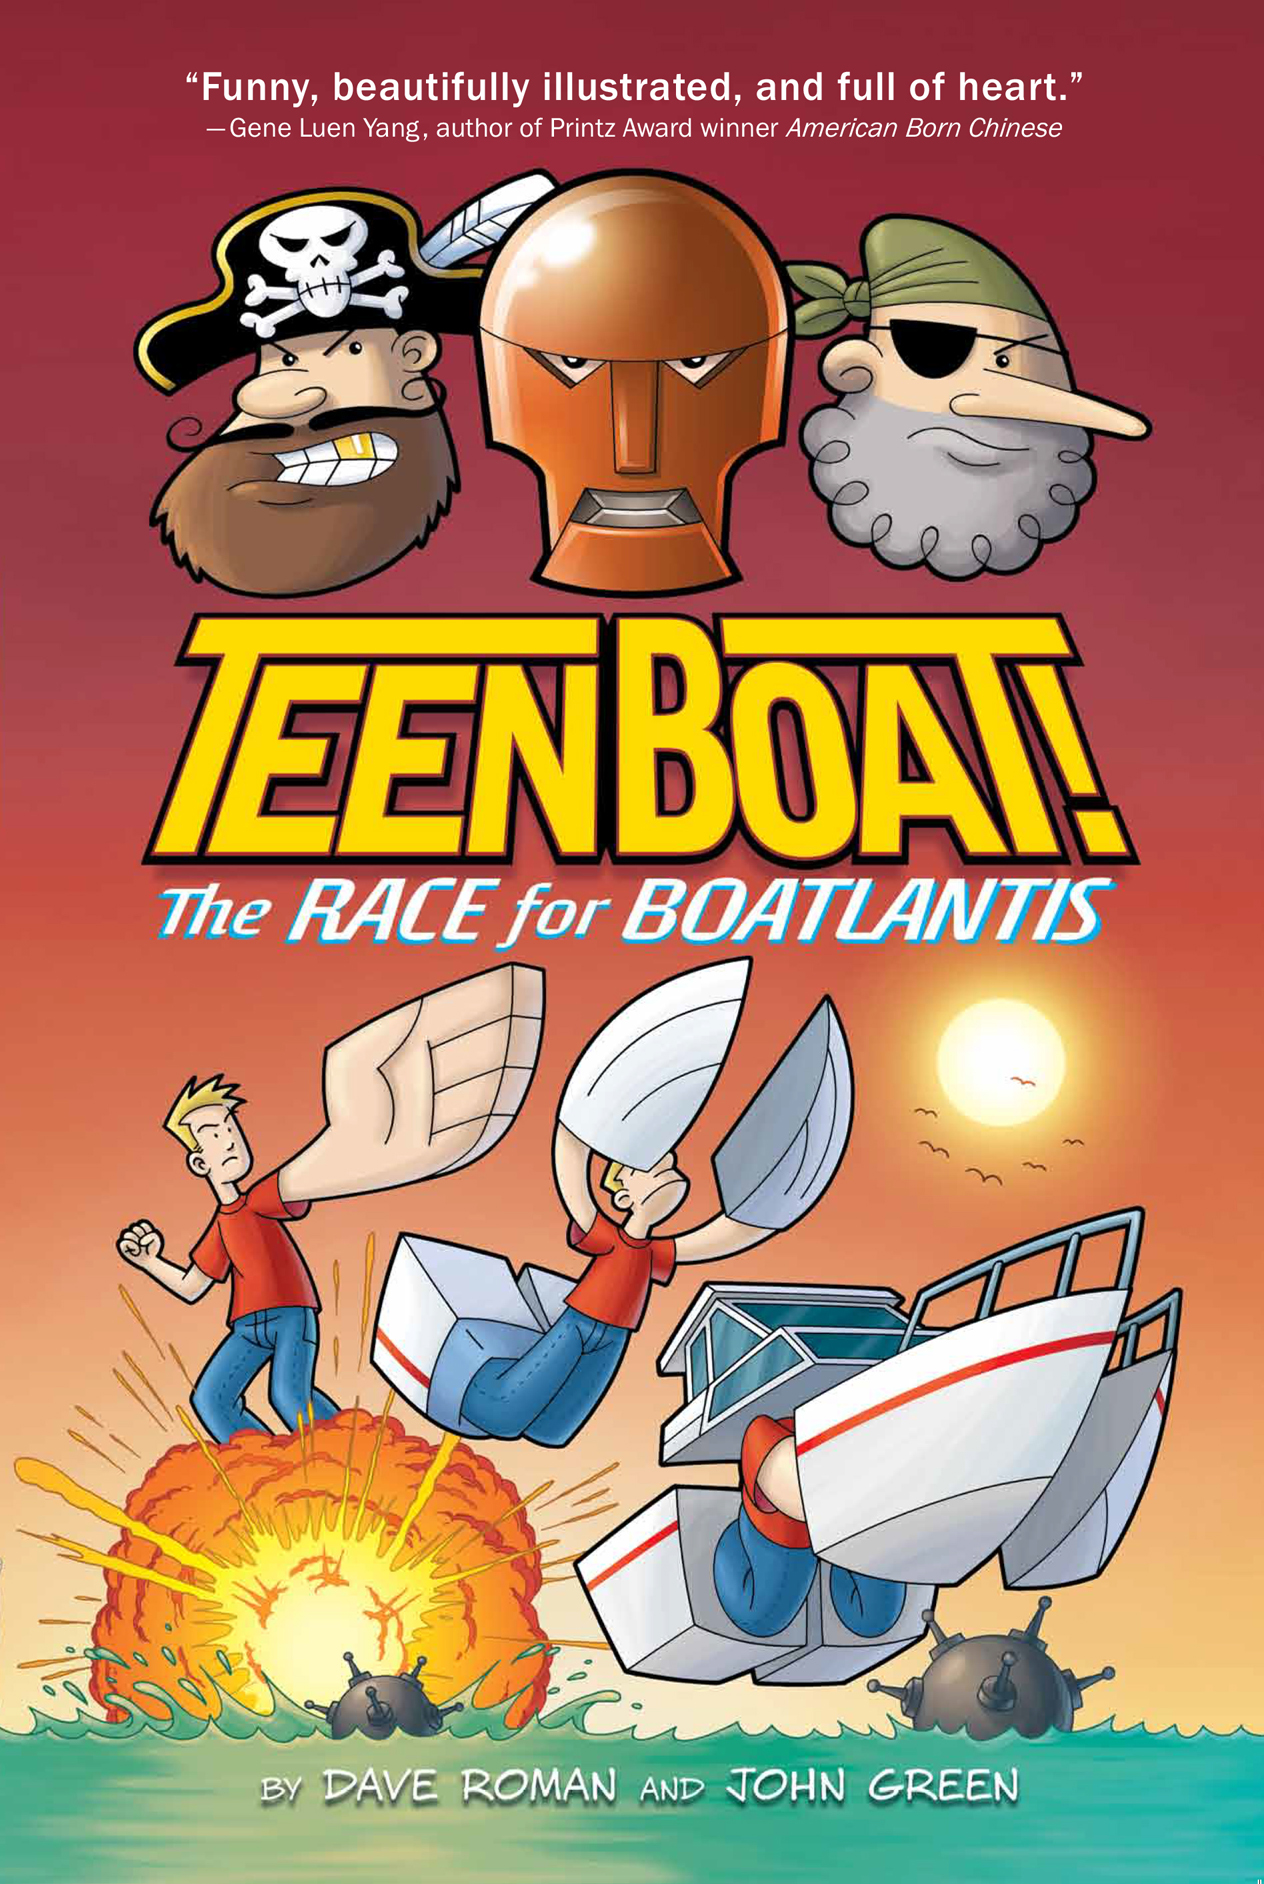 Flatting     High school drama!  Pirates! Emotions! The Ignatz Award-winning comic about a young man who has the power to turn into a boat is back in a new full-color graphic novel, with a never-before-seen story that combines all the ANGST of being a teen with all the THRILL of being a boat!